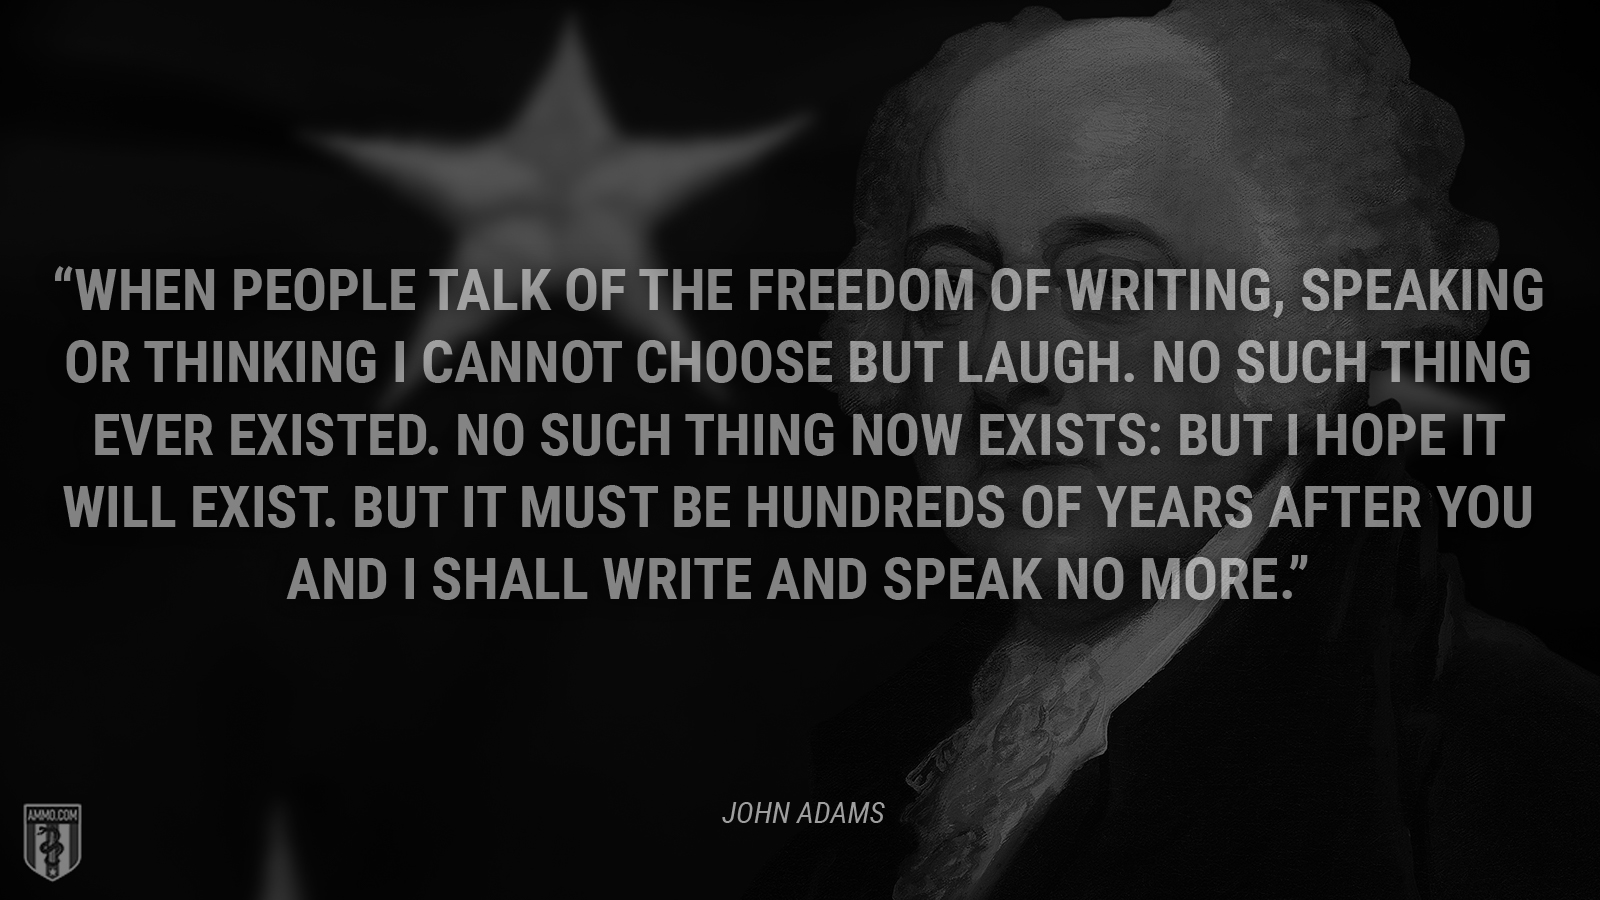 """When people talk of the freedom of writing, speaking or thinking I cannot choose but laugh. No such thing ever existed. No such thing now exists: but I hope it will exist. But it must be hundreds of years after you and I shall write and speak no more."" - John Adams"